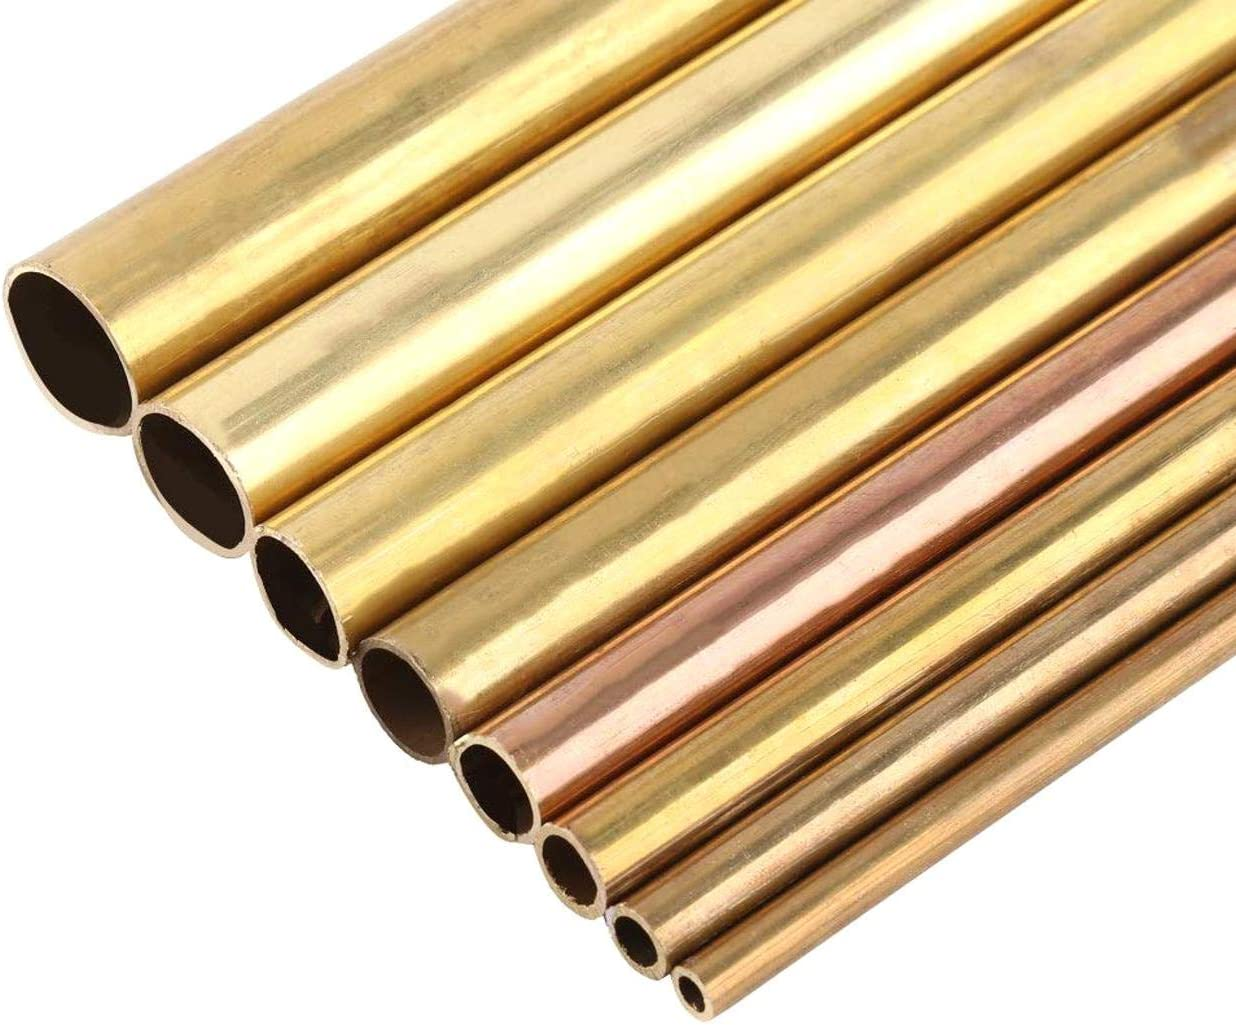 Agger 1PC 50cm Brass Tube Wall Thickness Brass Tube Round Length Model Making Tube Brass Tubing